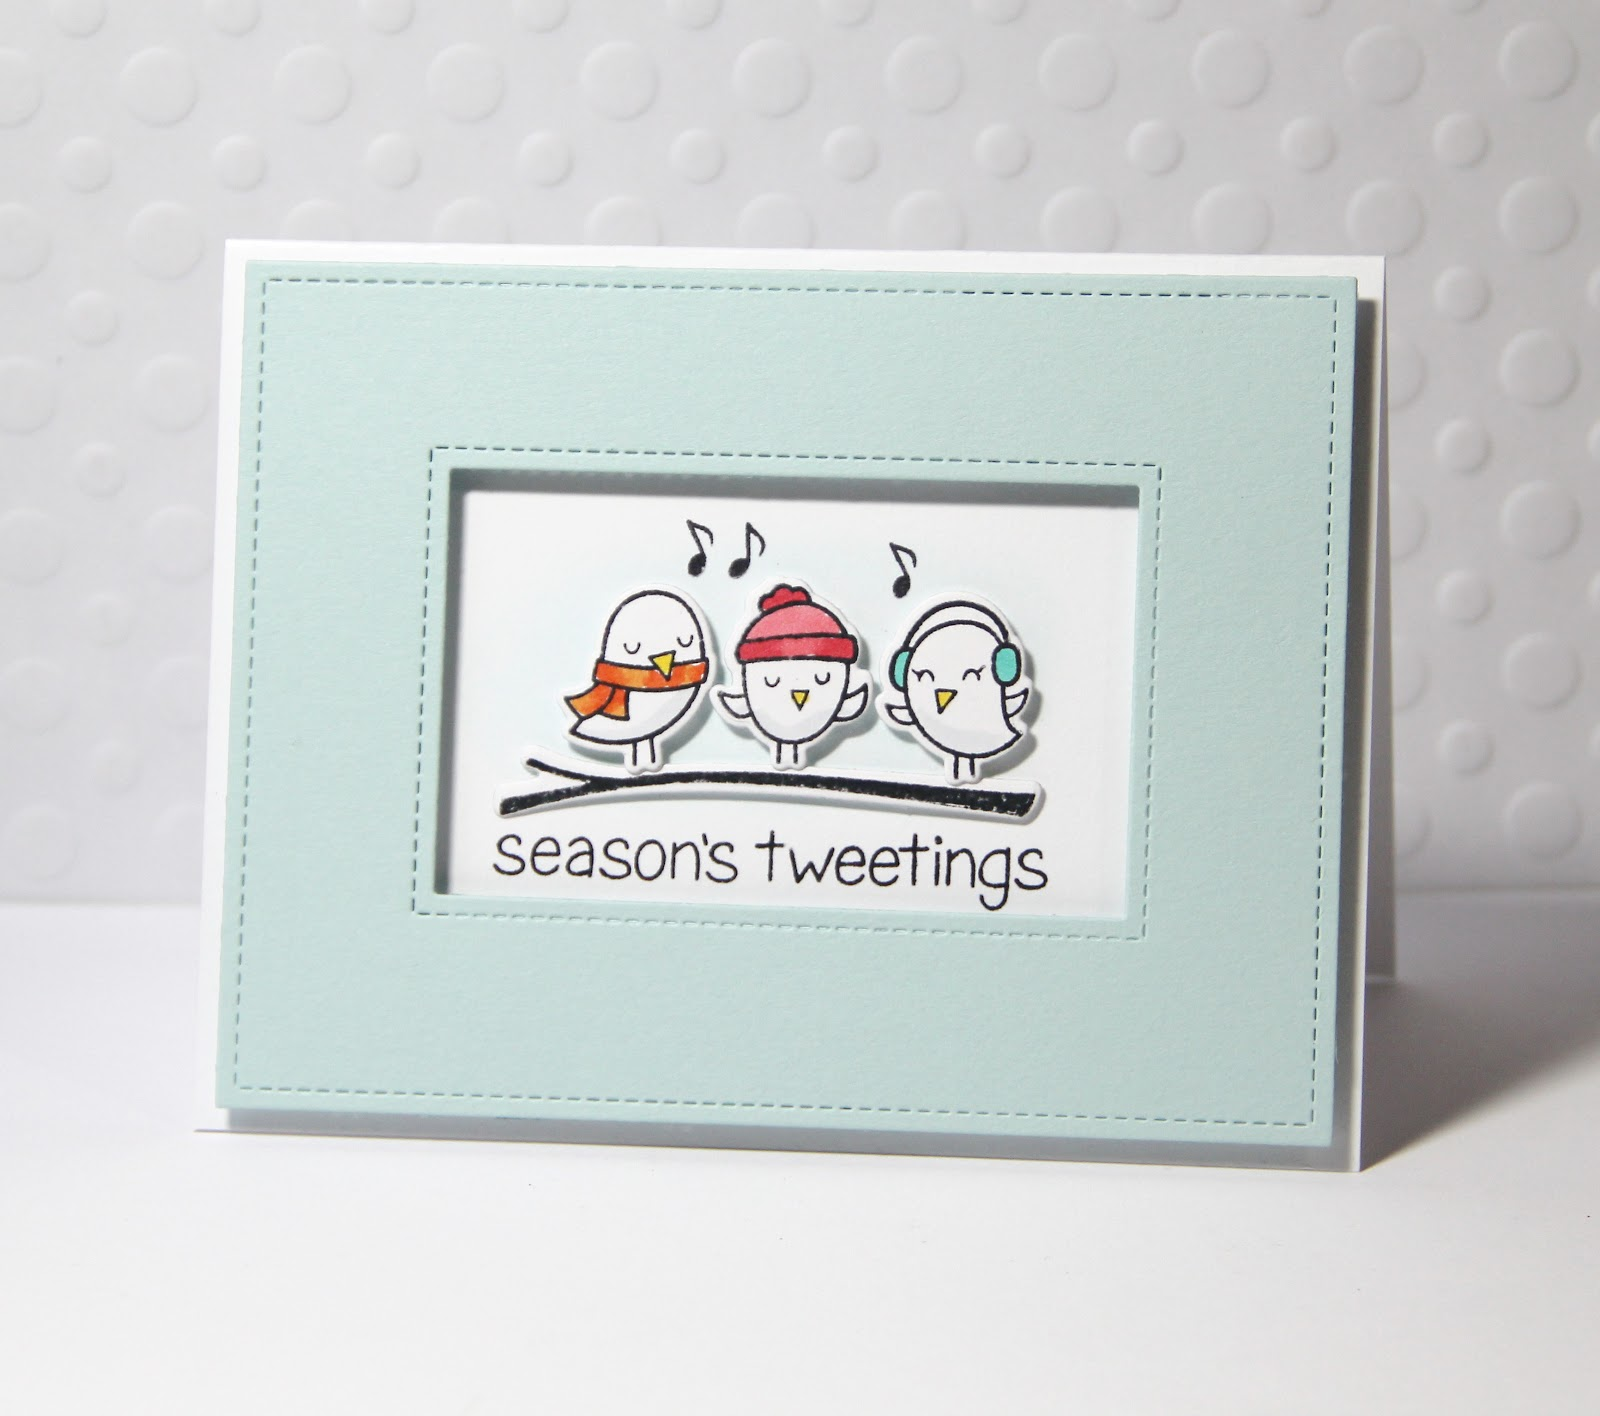 Amusing michelle this year is going to be all about singing sparrows as i send out my very late christmas cards m4hsunfo